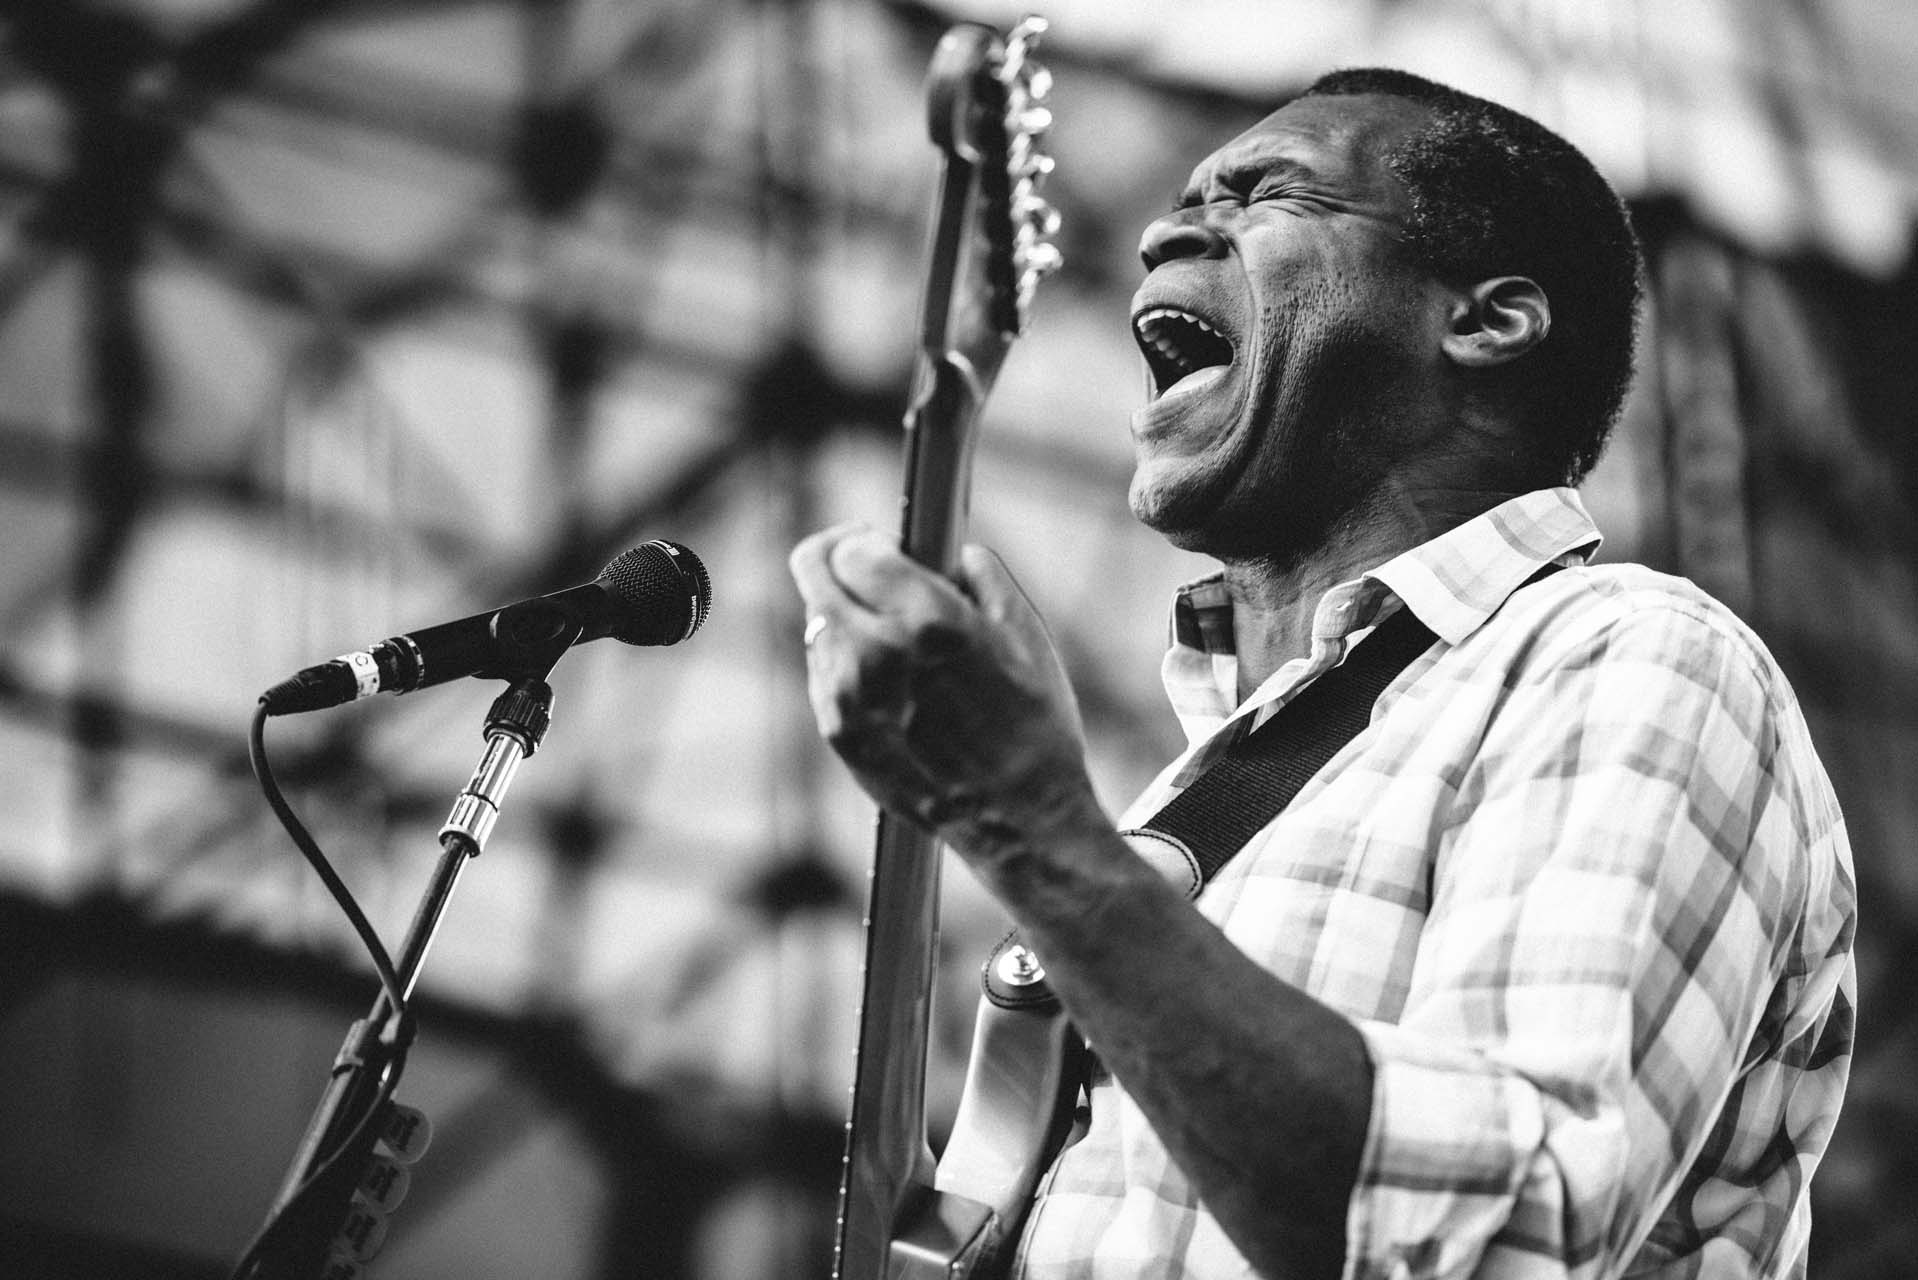 robert_cray_live_the_lawn_indianapolis_2013-14